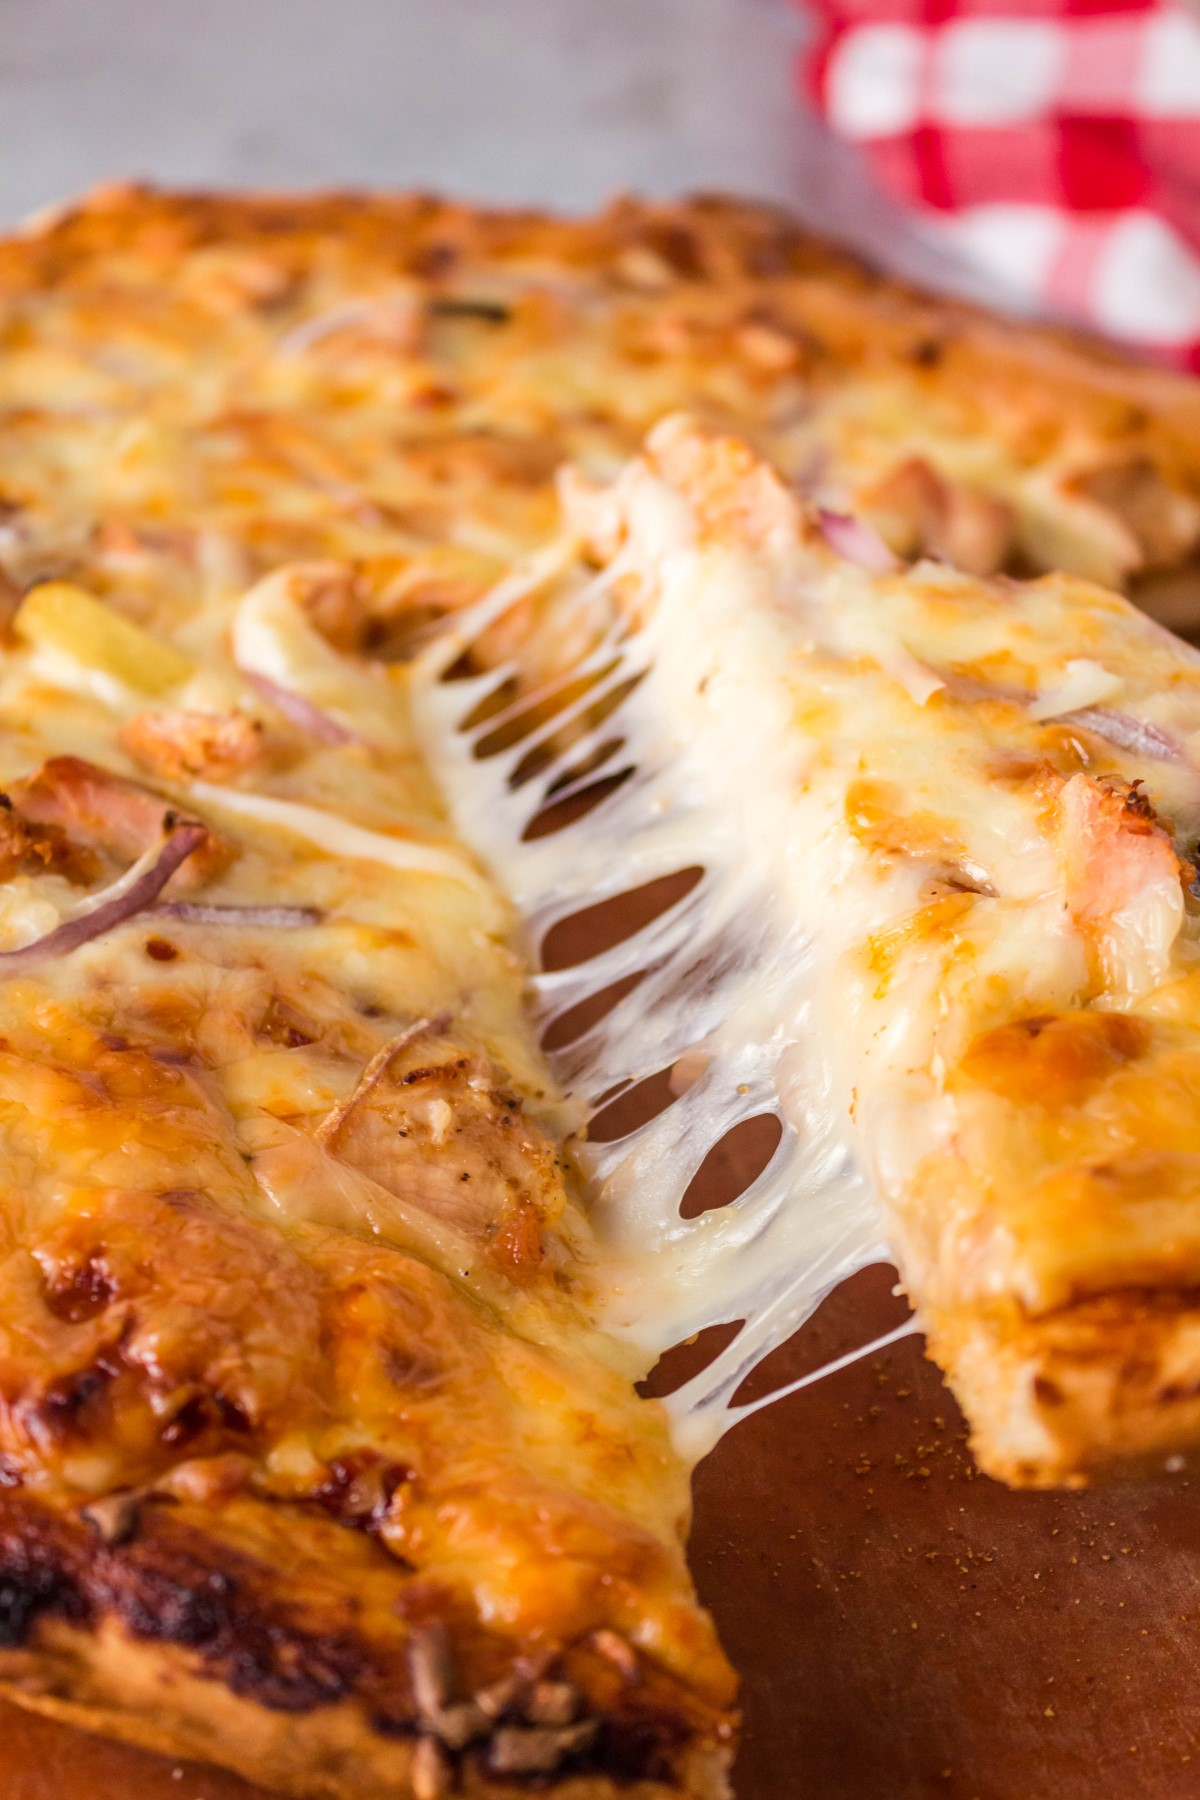 A slice of BBQ chicken pizza being lifted form the platter and the cheese is pulling and stretching